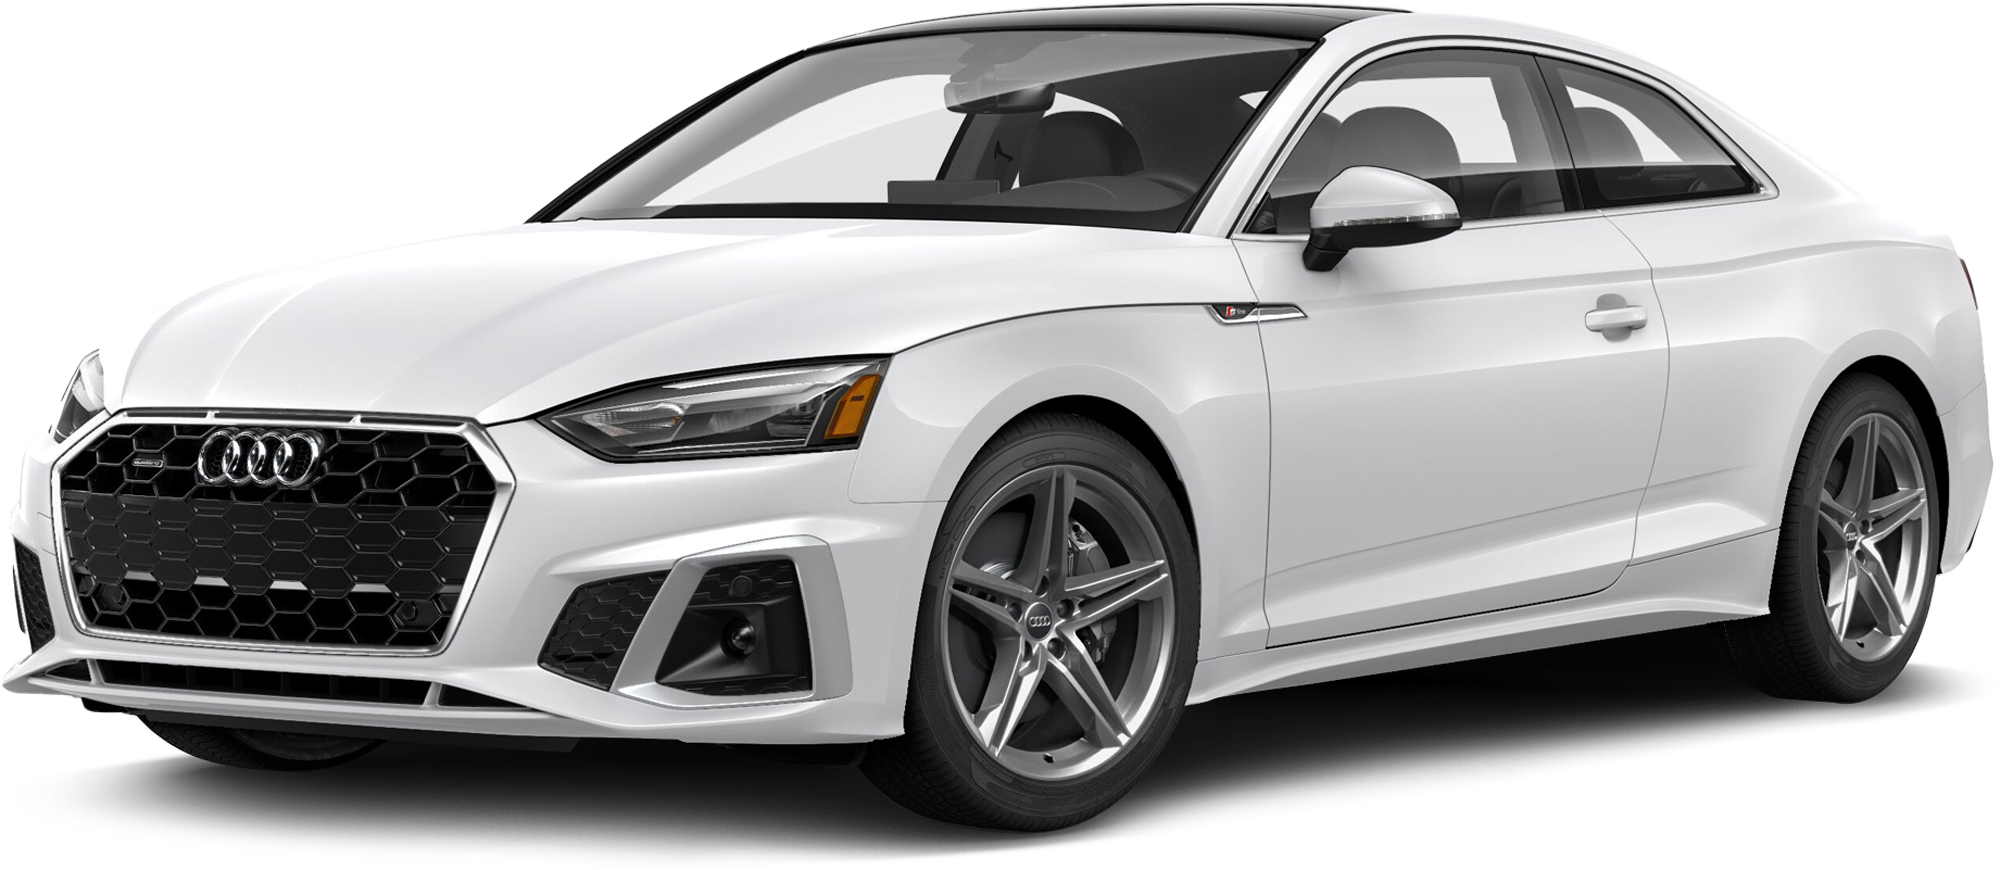 2020 Audi A5 Incentives Specials Offers In Salt Lake City Ut